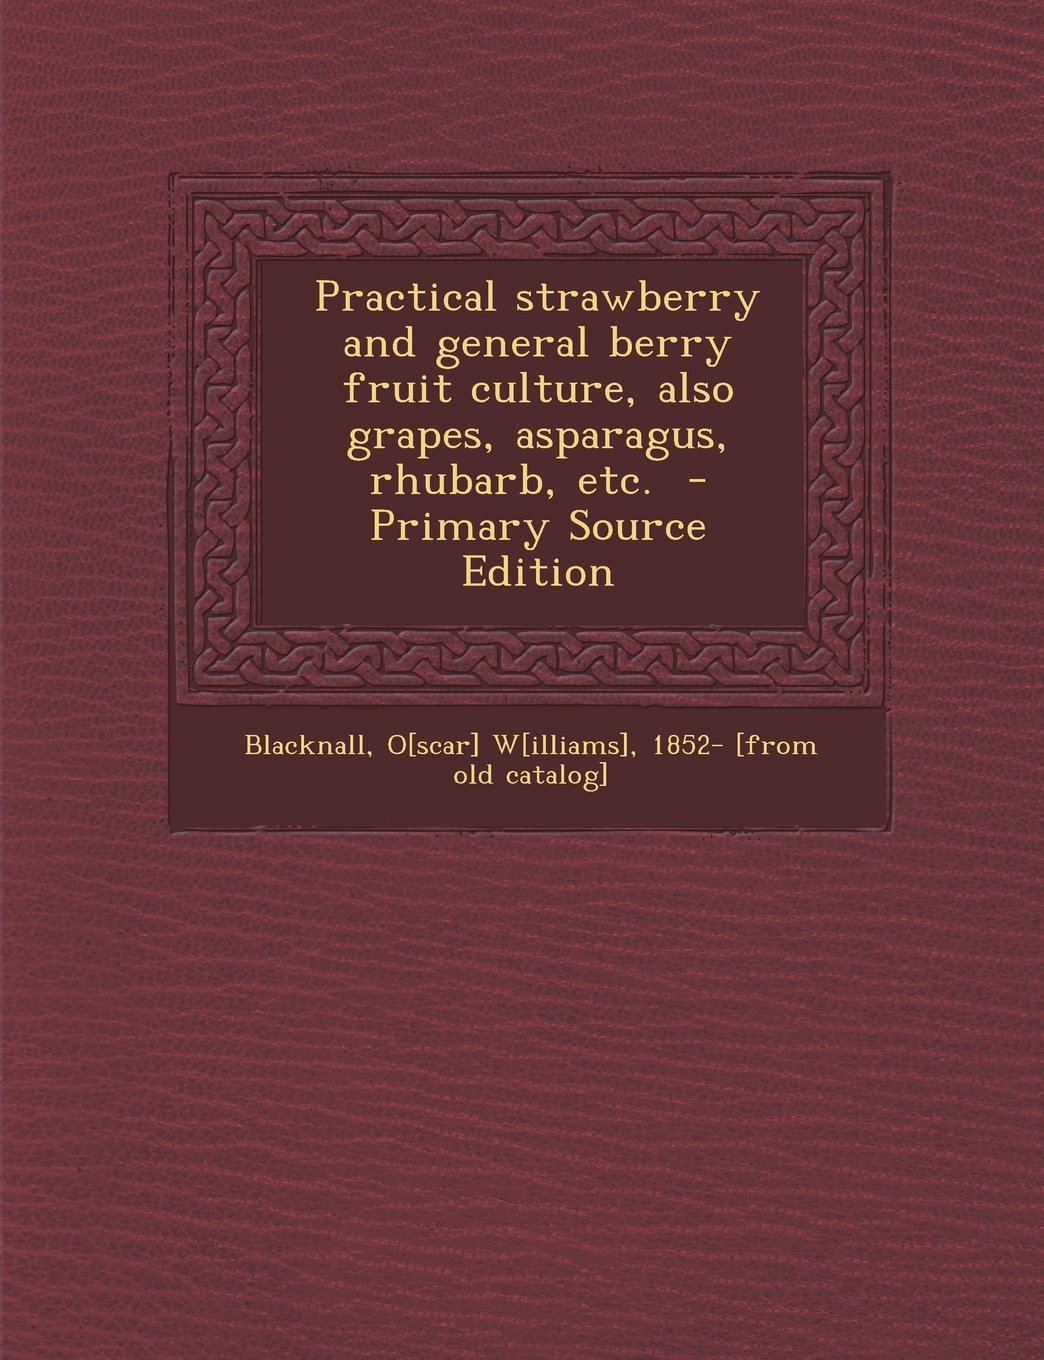 Practical Strawberry and General Berry Fruit Culture: Also of Grapes Asparagus Rhubarb etc.